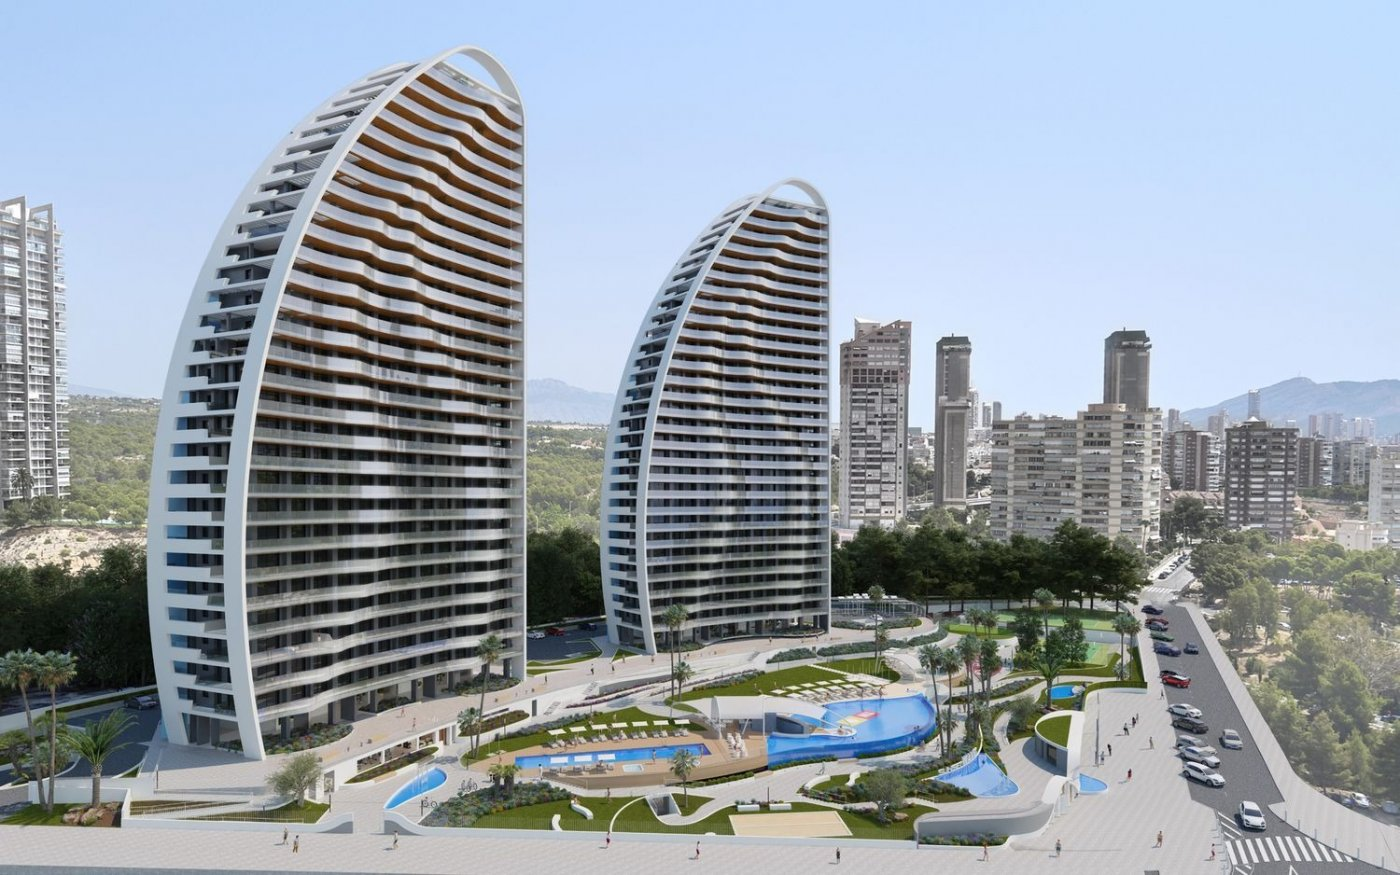 Apartment - Under Construction - Benidorm - Benidorm